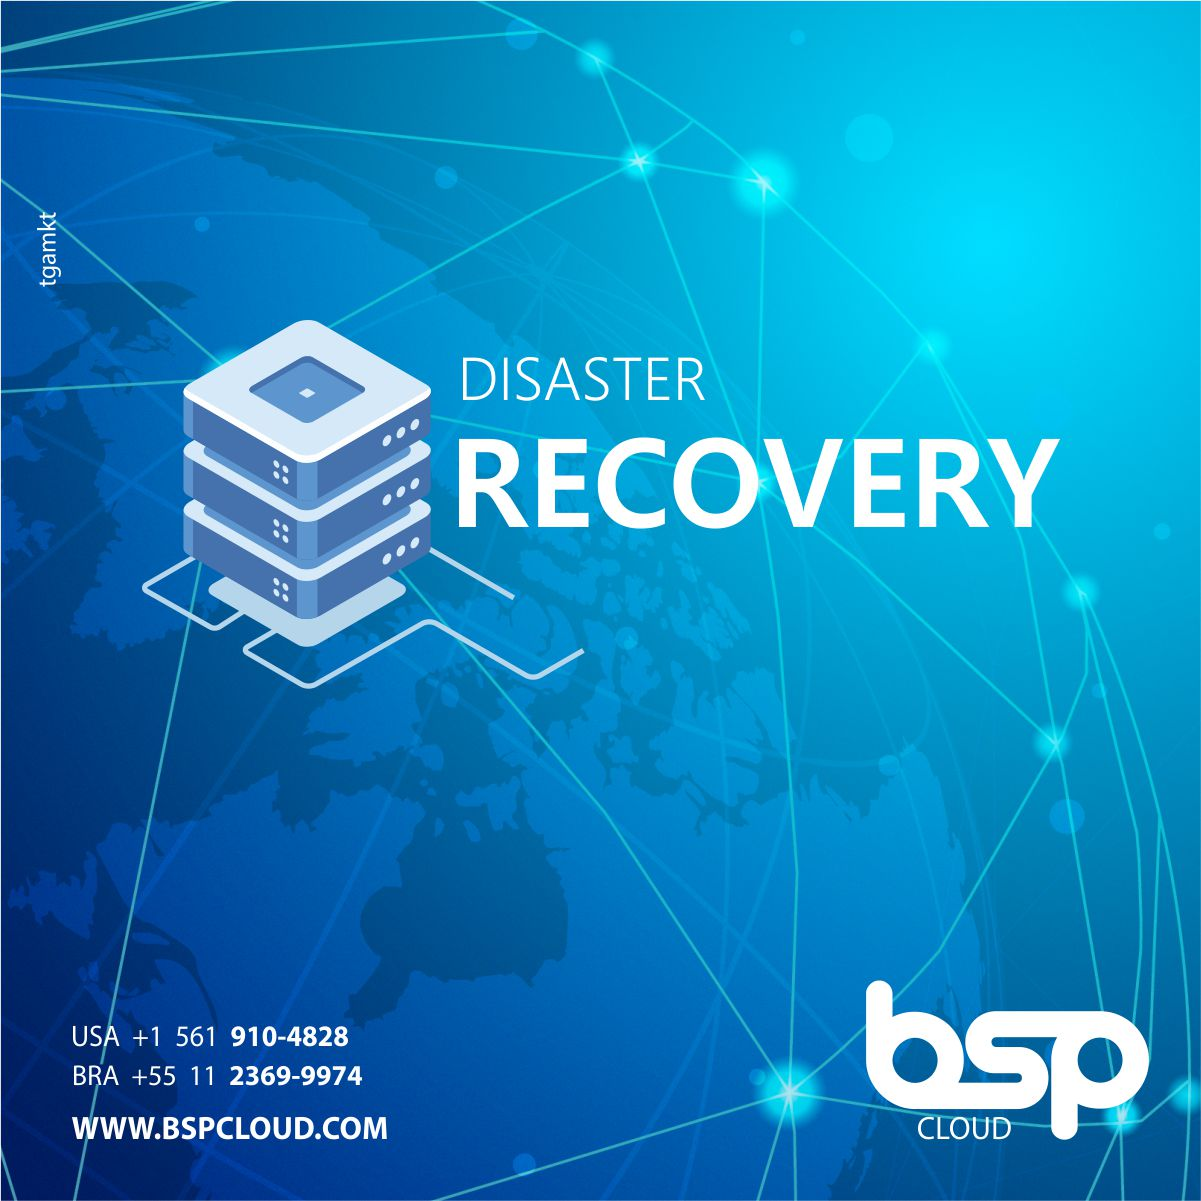 Disaster Recovery Bsp Cloud